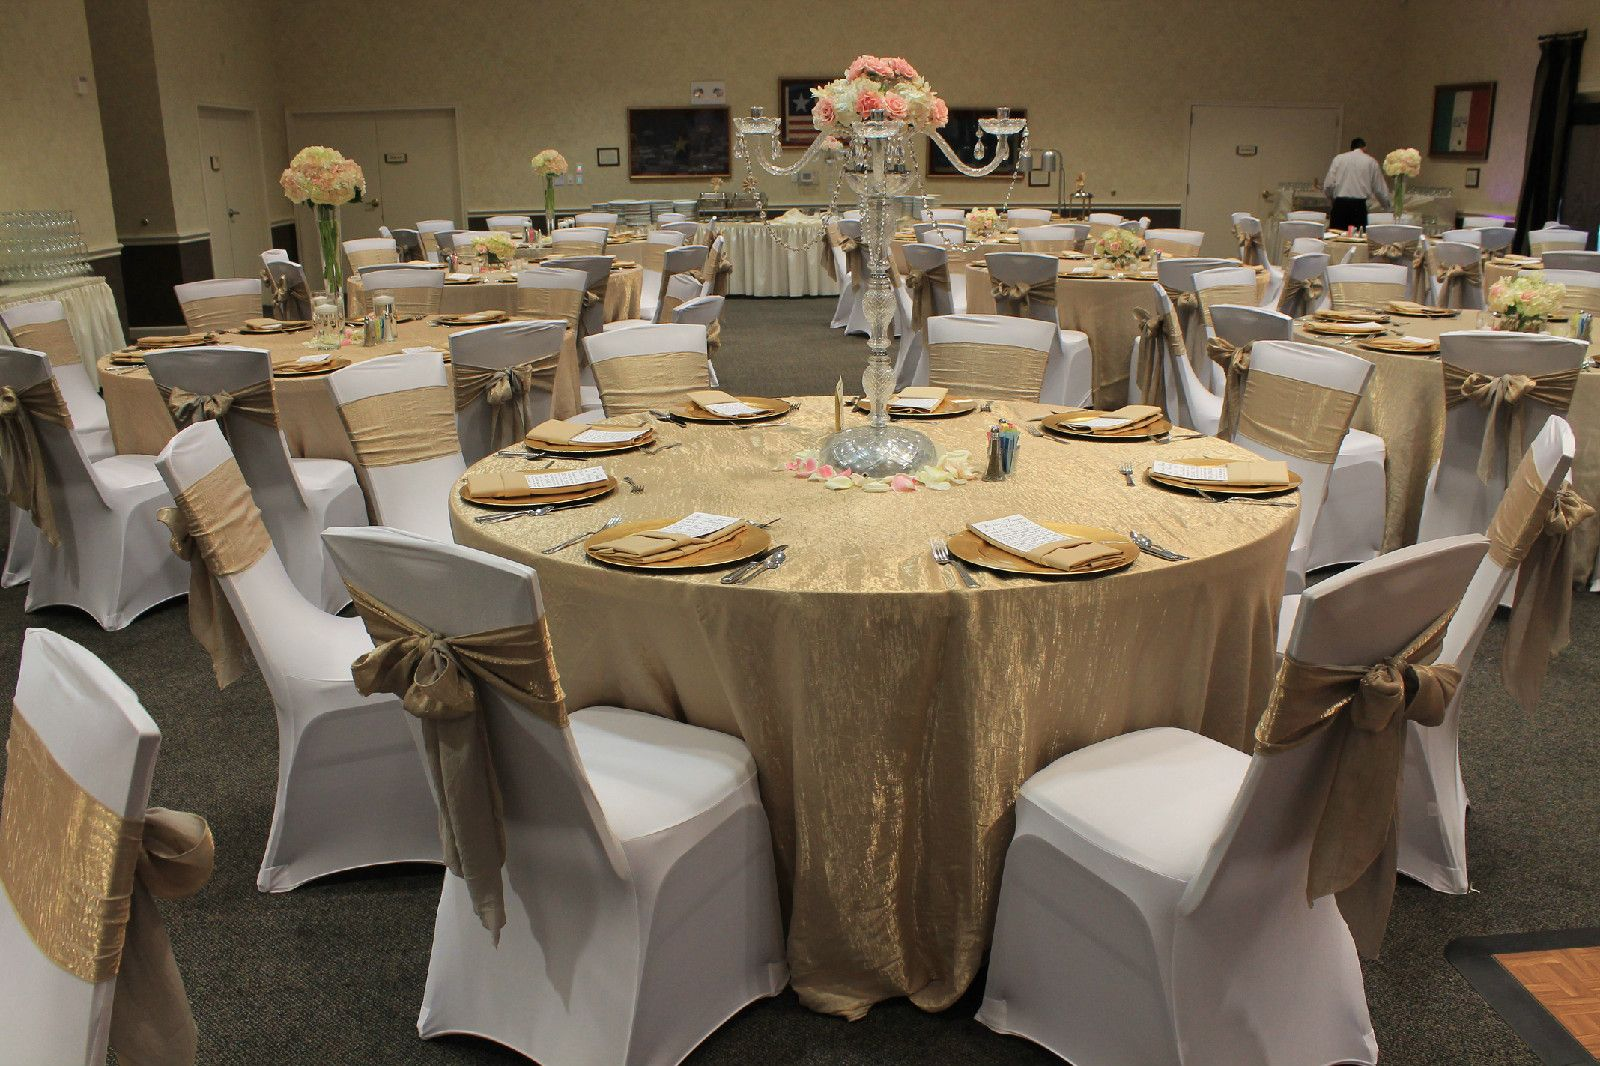 gold chair covers with black sash royal botania alura armchair champagne crushed iridescent satin tablecloths and sashes